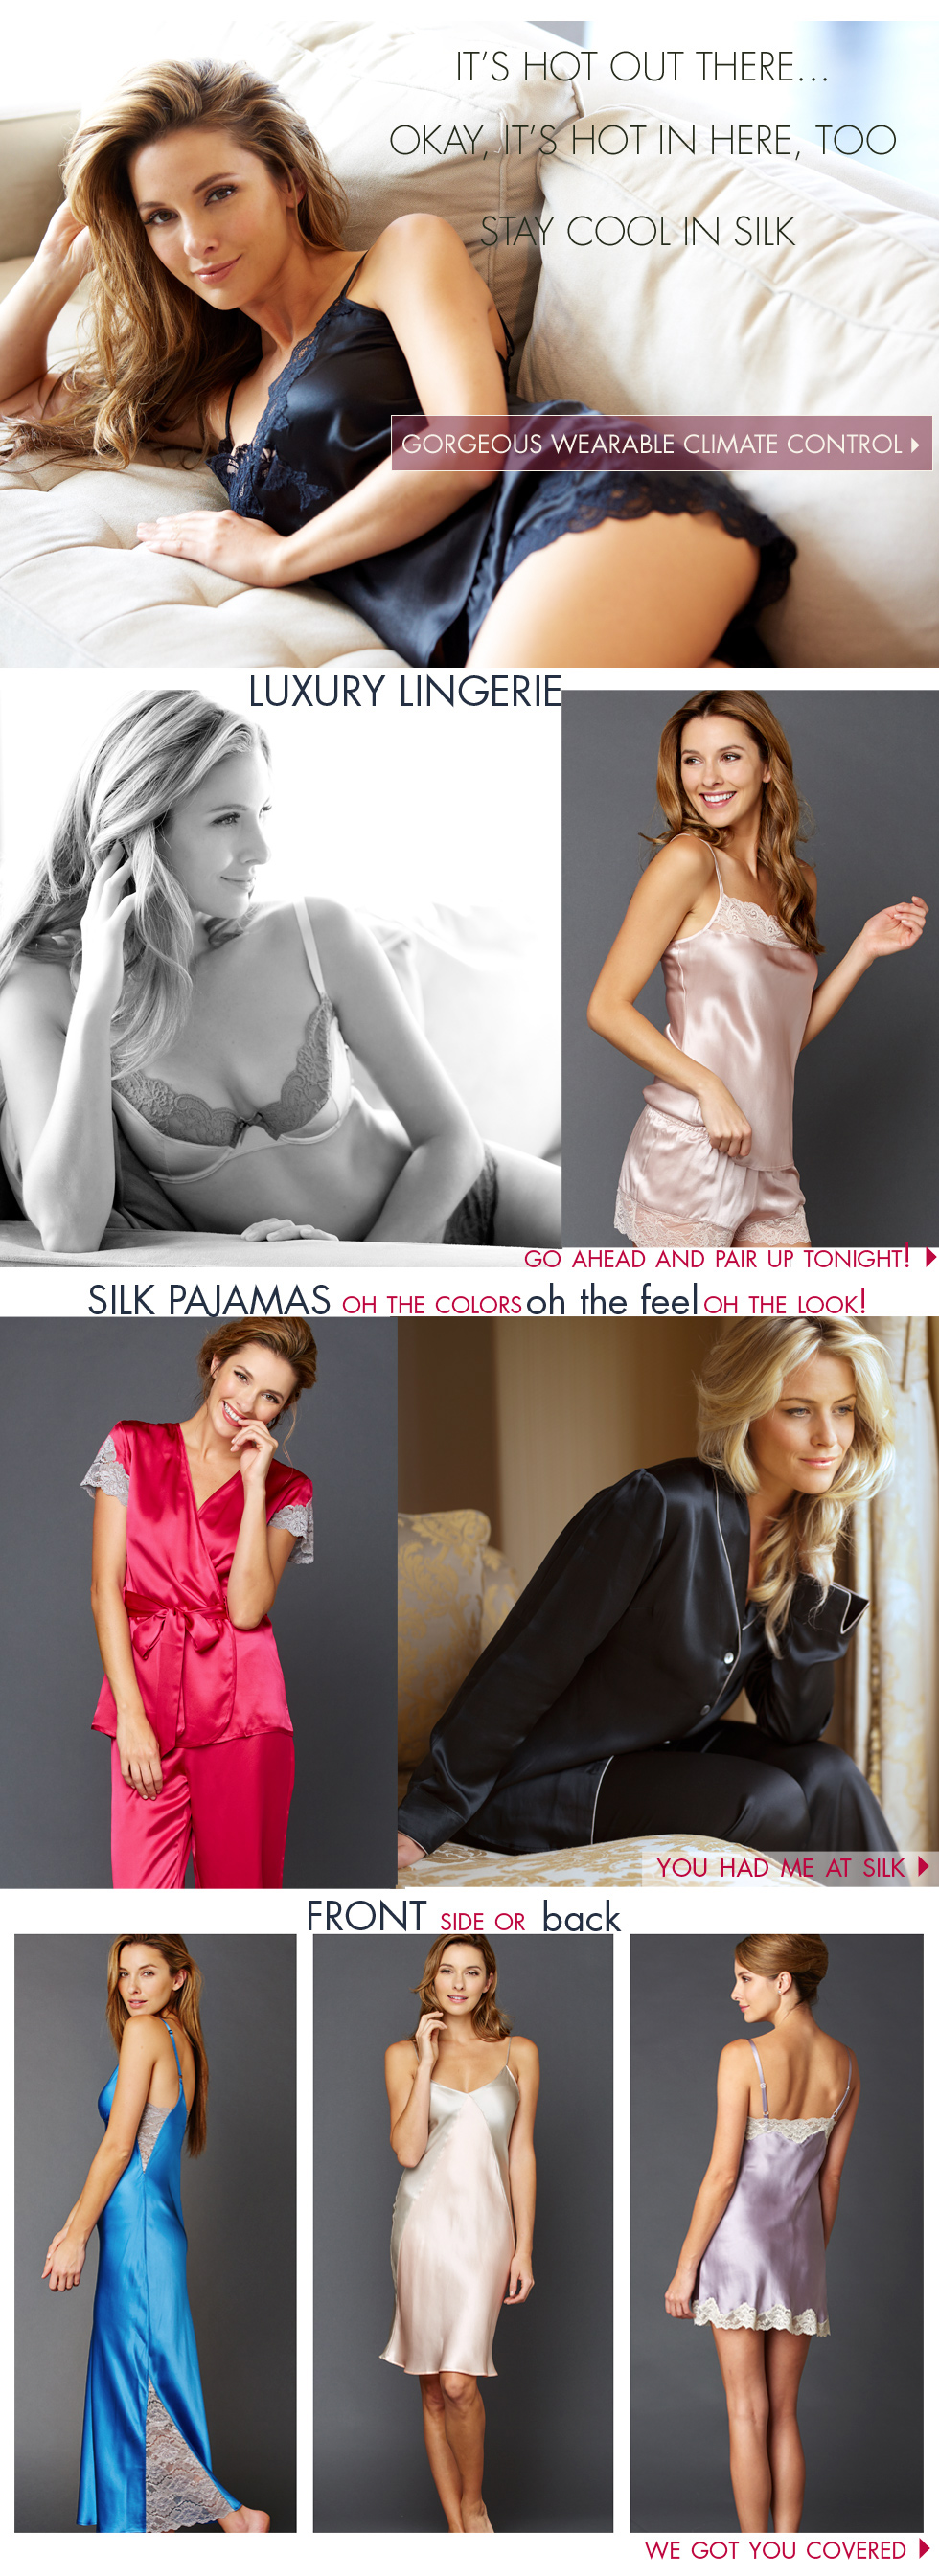 it's hot! stay cool this summer with luxury lingerie and sleepwear